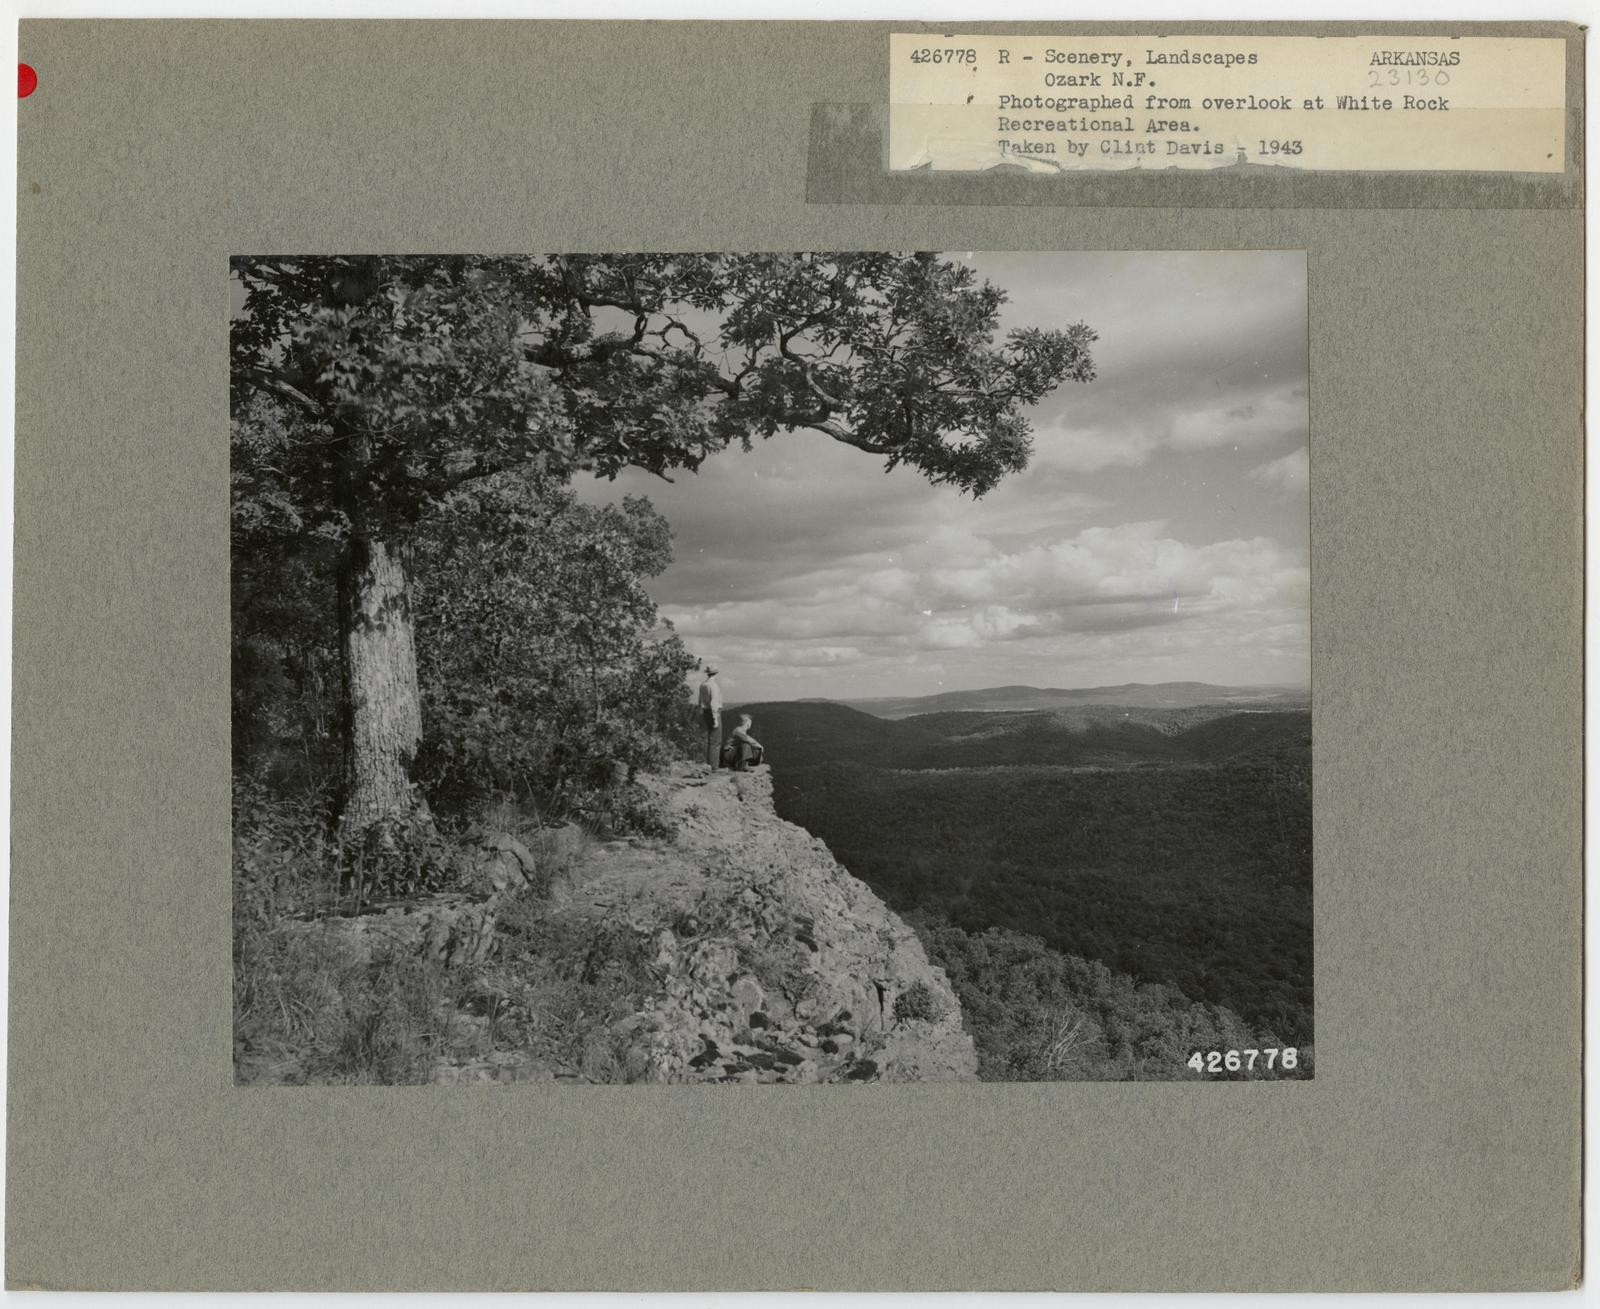 Scenery and Landscapes - Arkansas